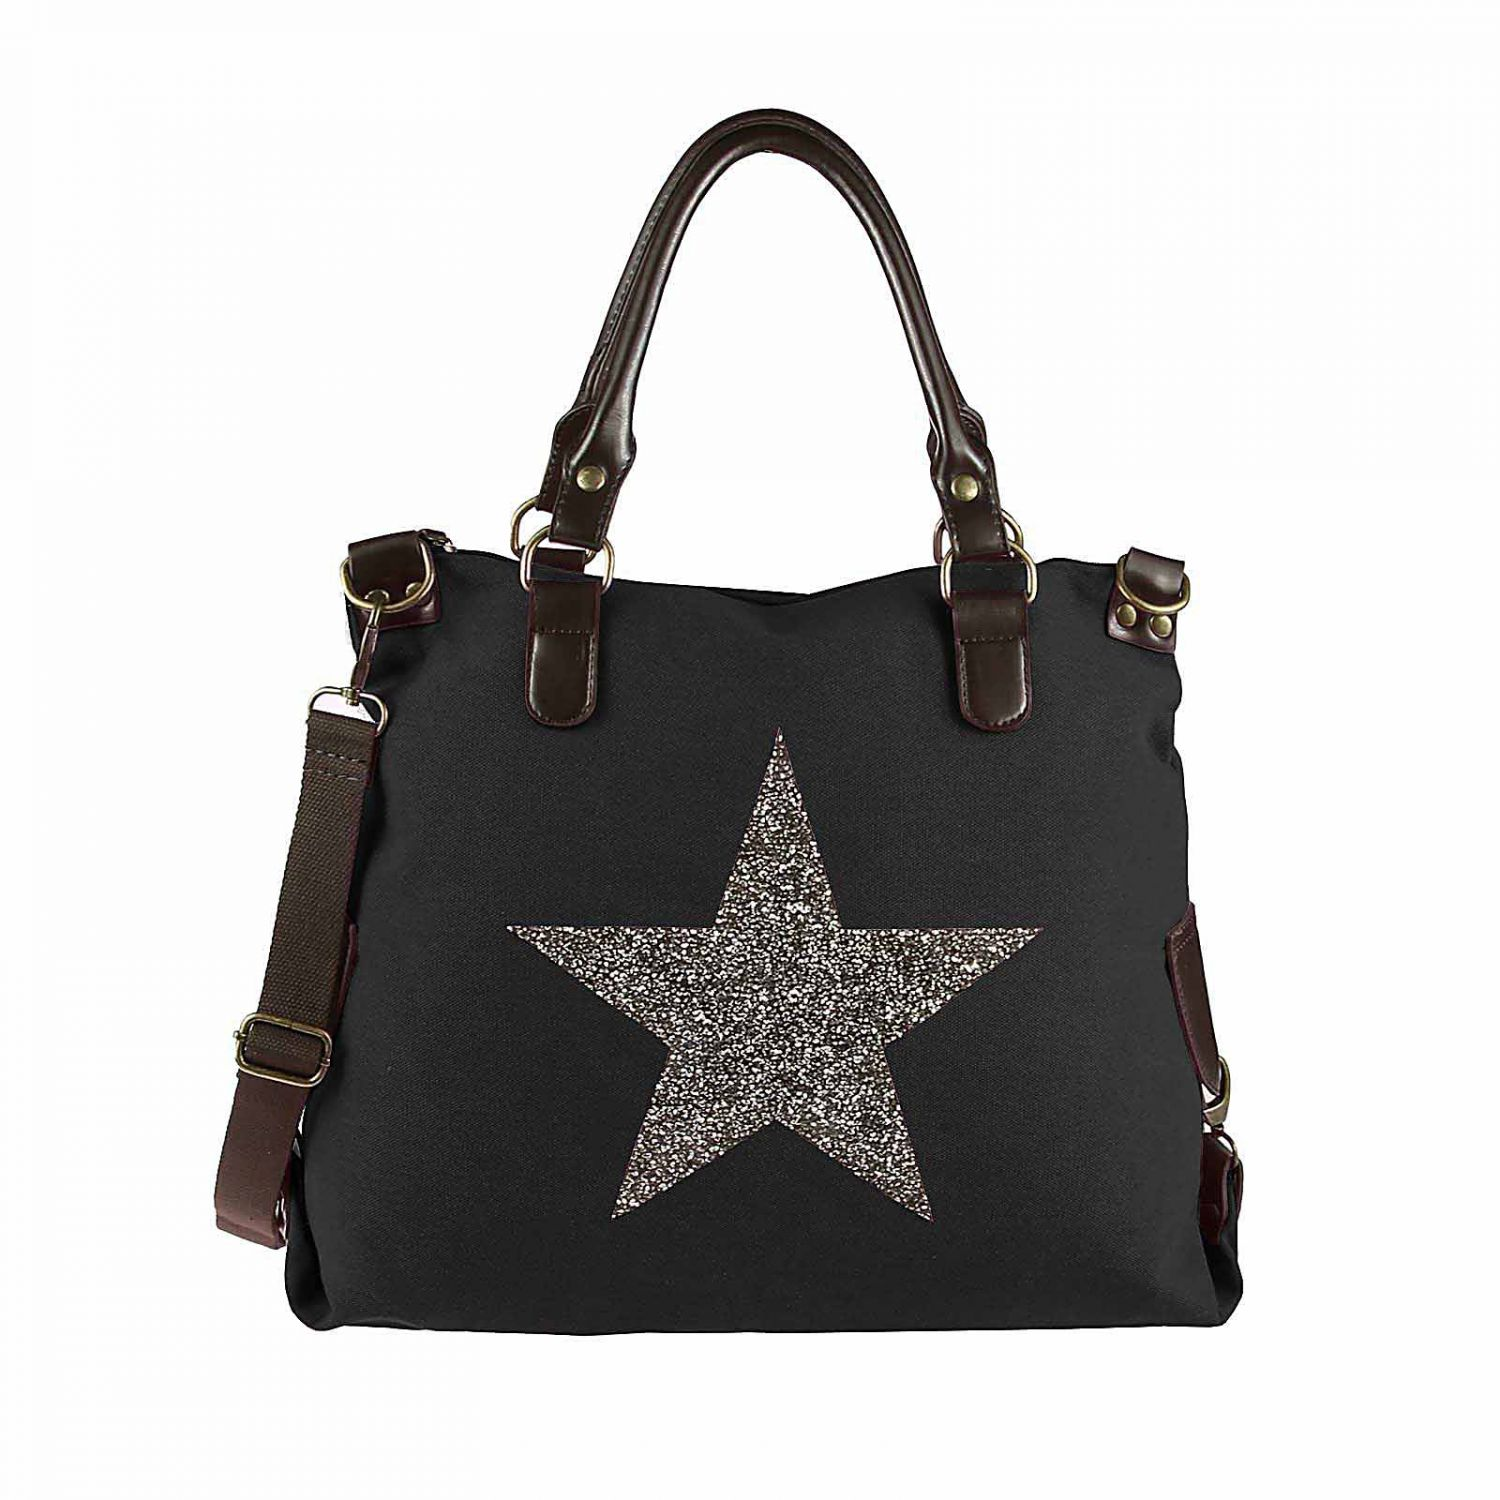 Sac A Main Bandouliere Strass : Besace pour femme din a strass ?toile sac toile denim